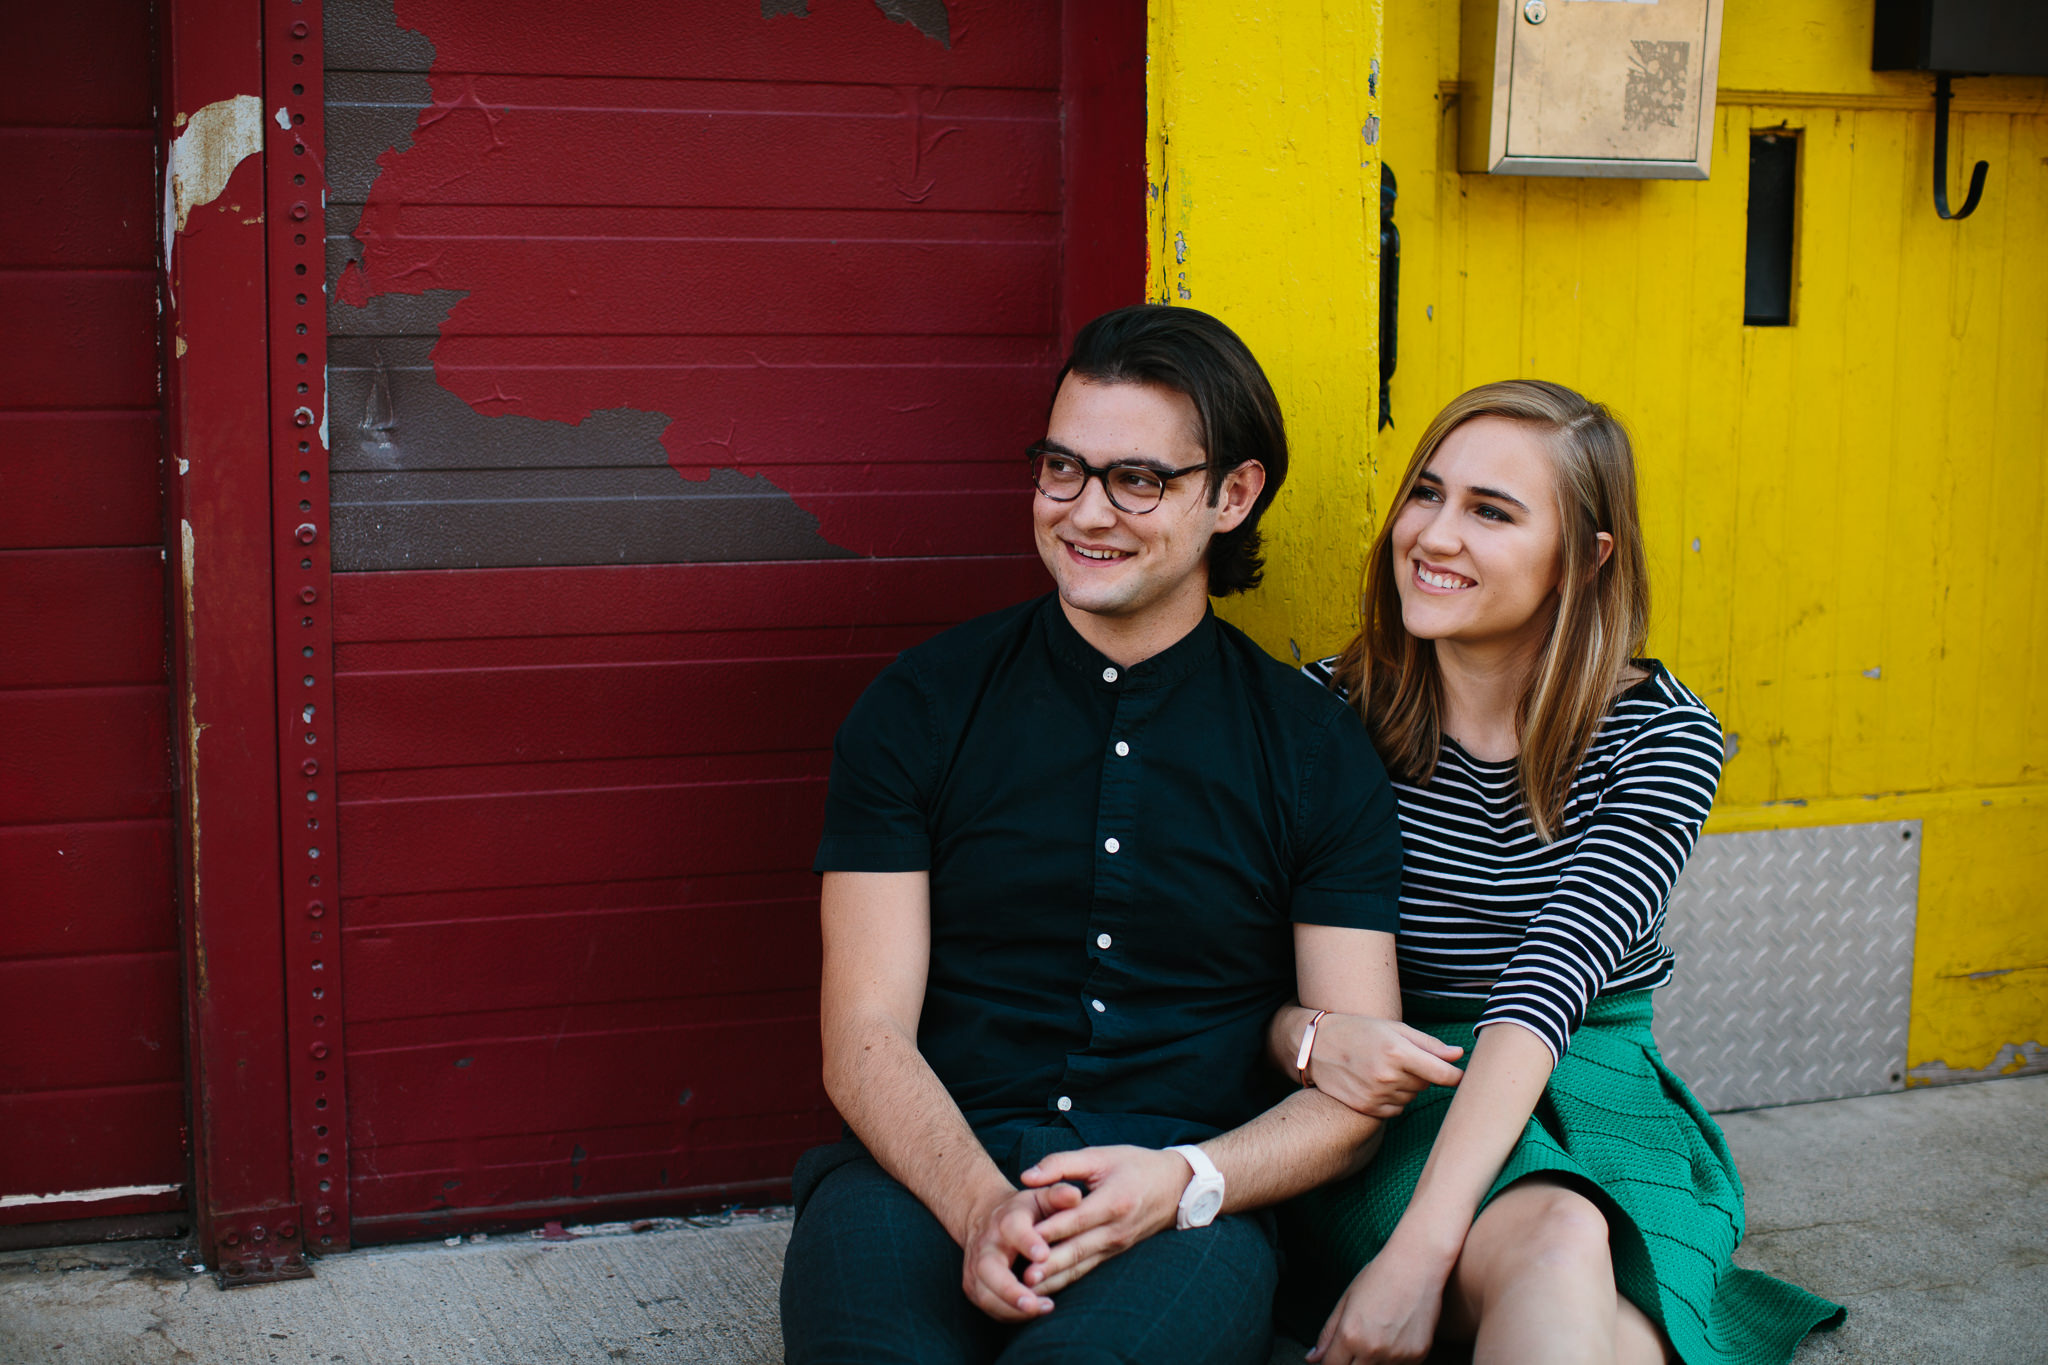 Engagement photos in the streets of Chicago